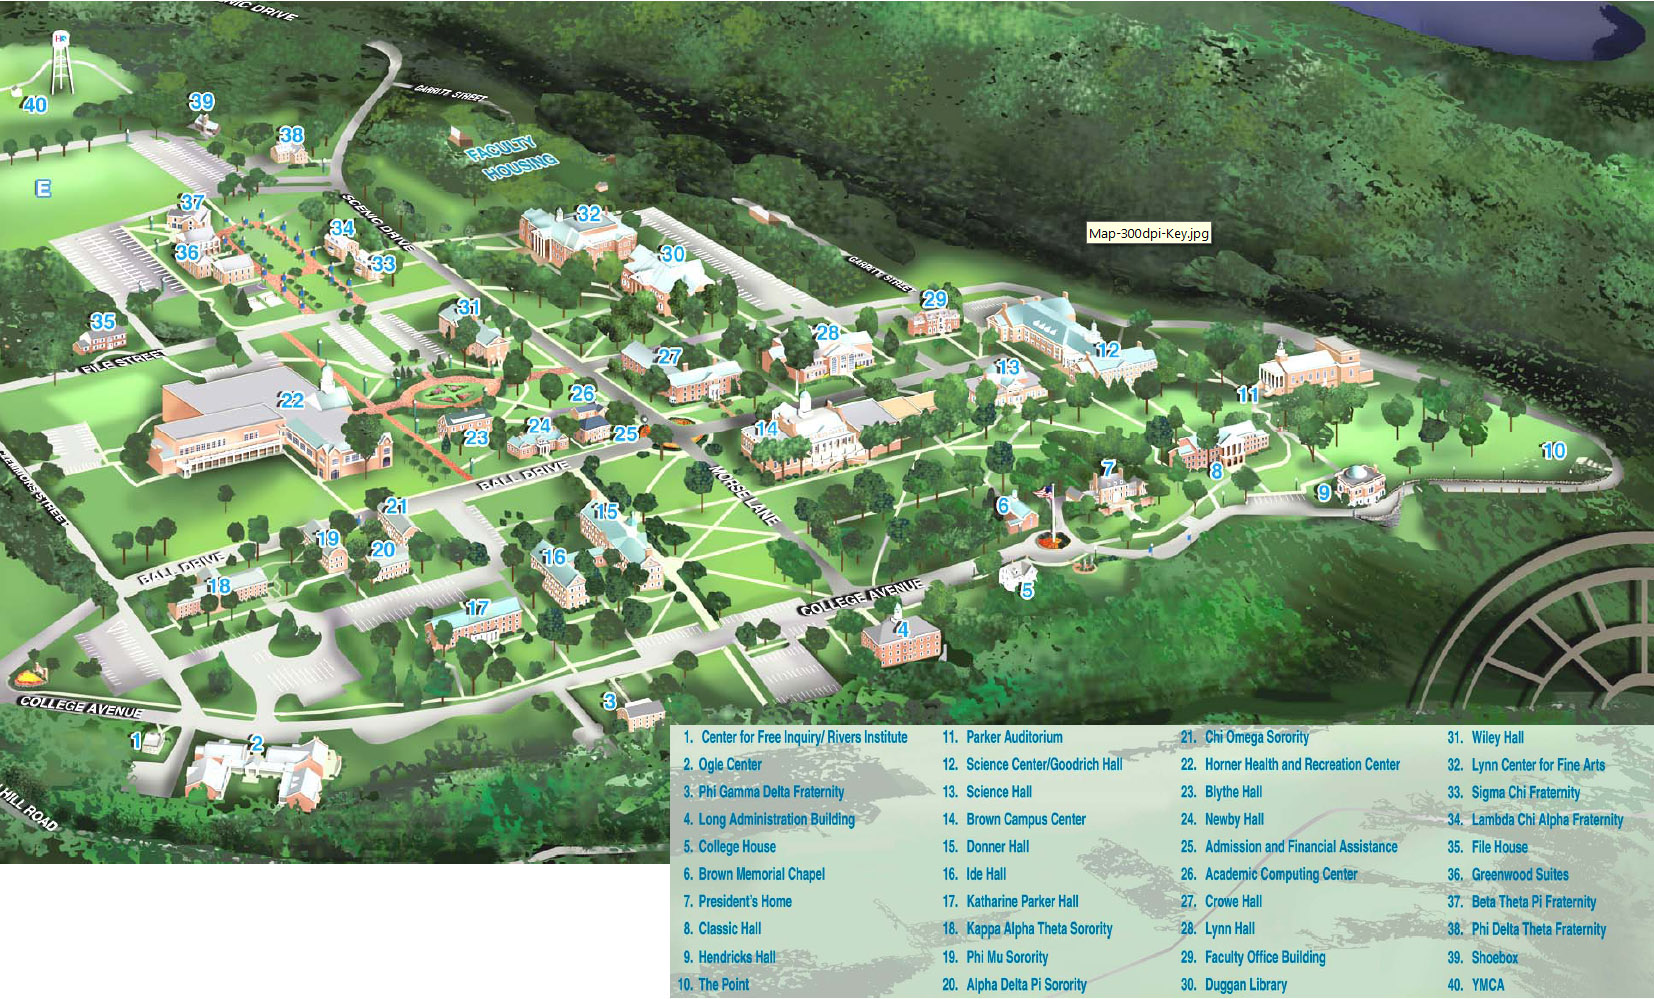 Hanover College Campus Map | Zip Code Map on dartmouth-hitchcock map, dartmouth lacrosse, dartmouth university library, dartmouth attractions, dartmouth nh, dartmouth athletics, dartmouth college, unh parking lot map, dartmouth basic, dartmouth winter carnival, dartmouth commencement, durham university college locations map, dartmouth medical school,